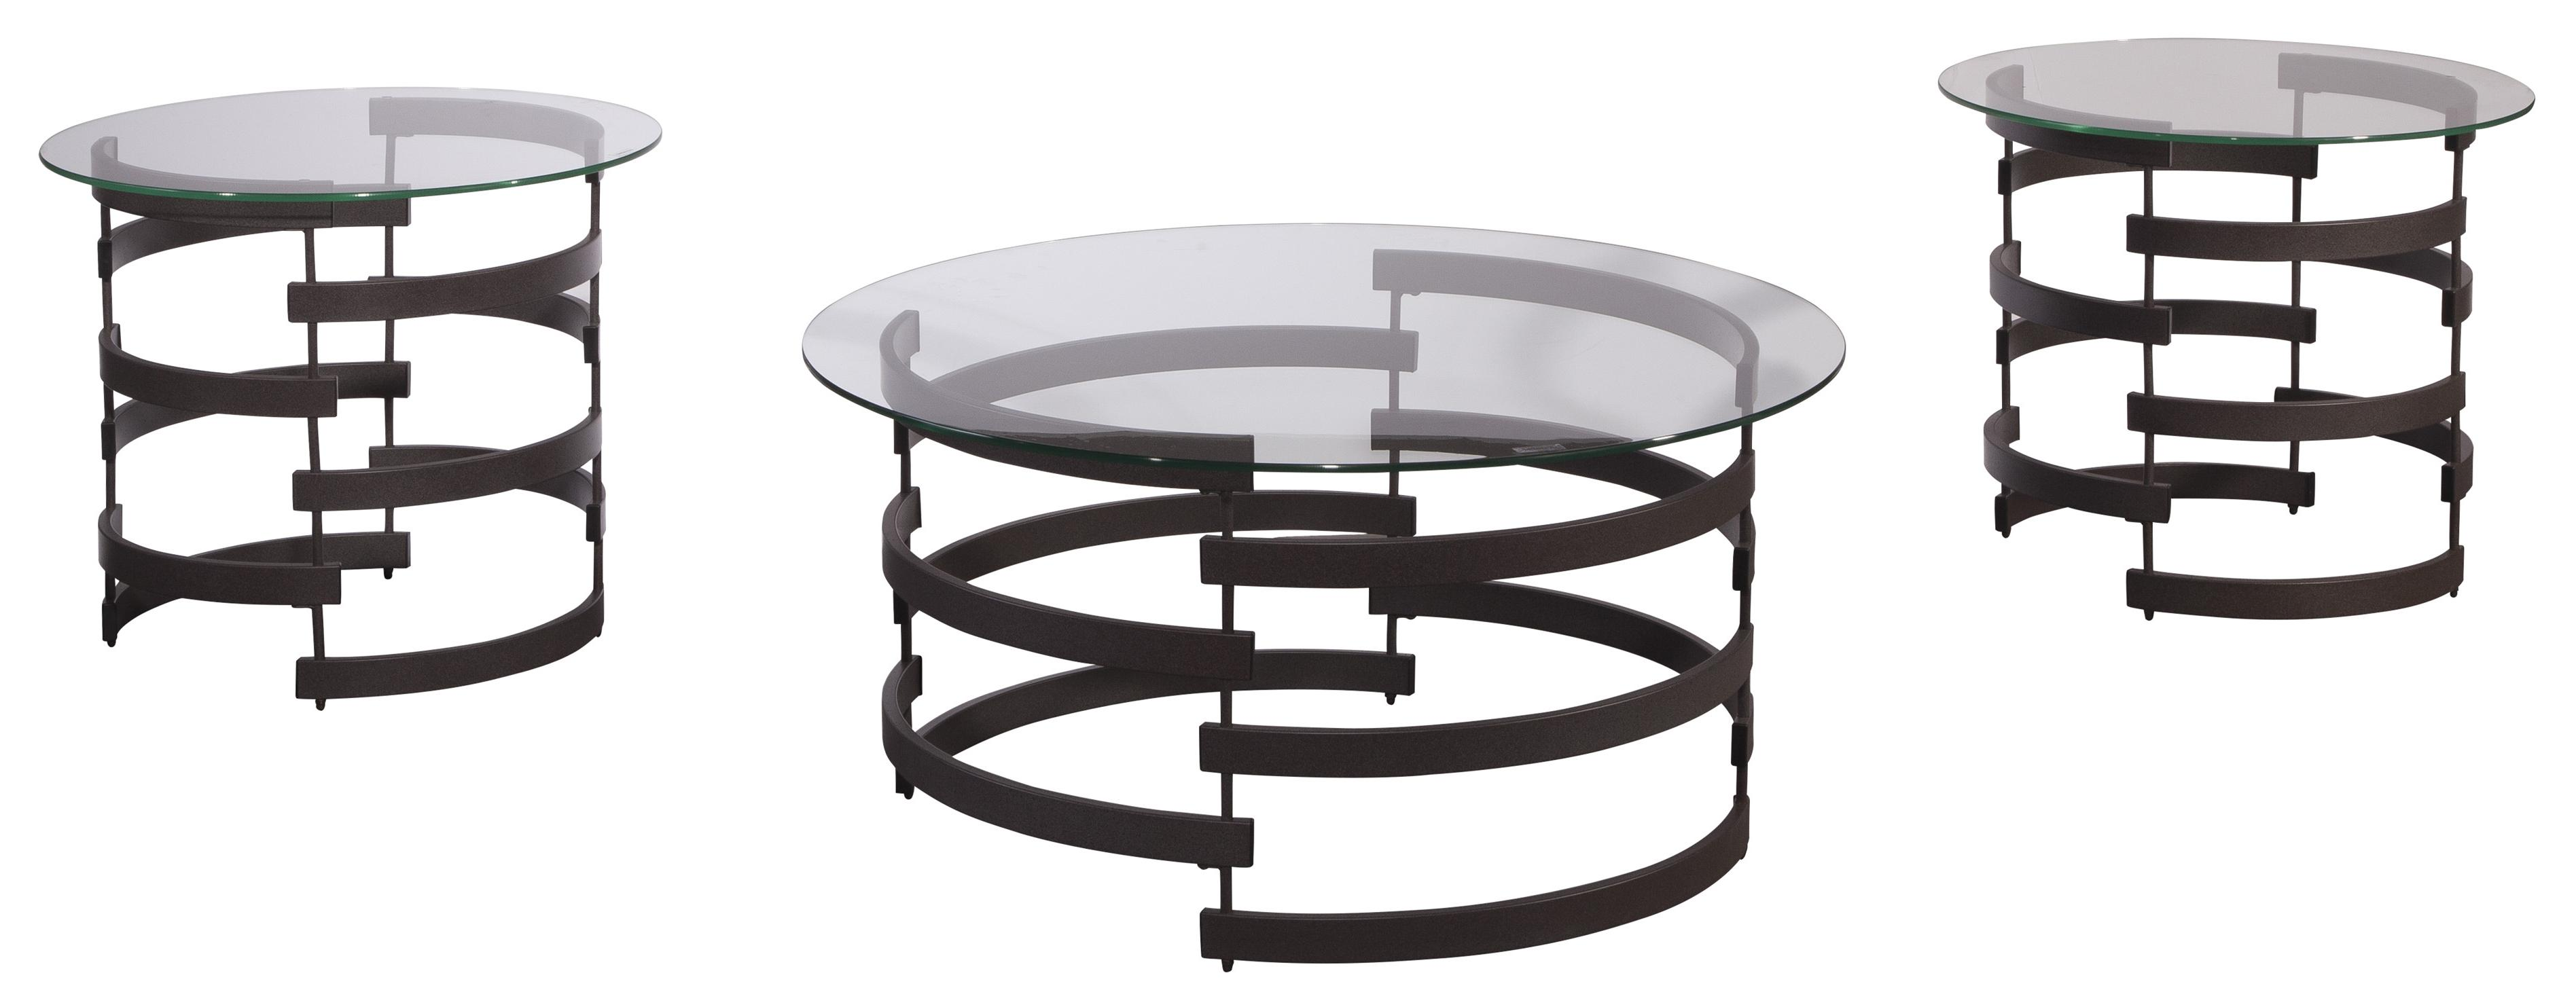 Signature Design by Ashley Kaymine Occasional Table Set - Item Number: T408-13